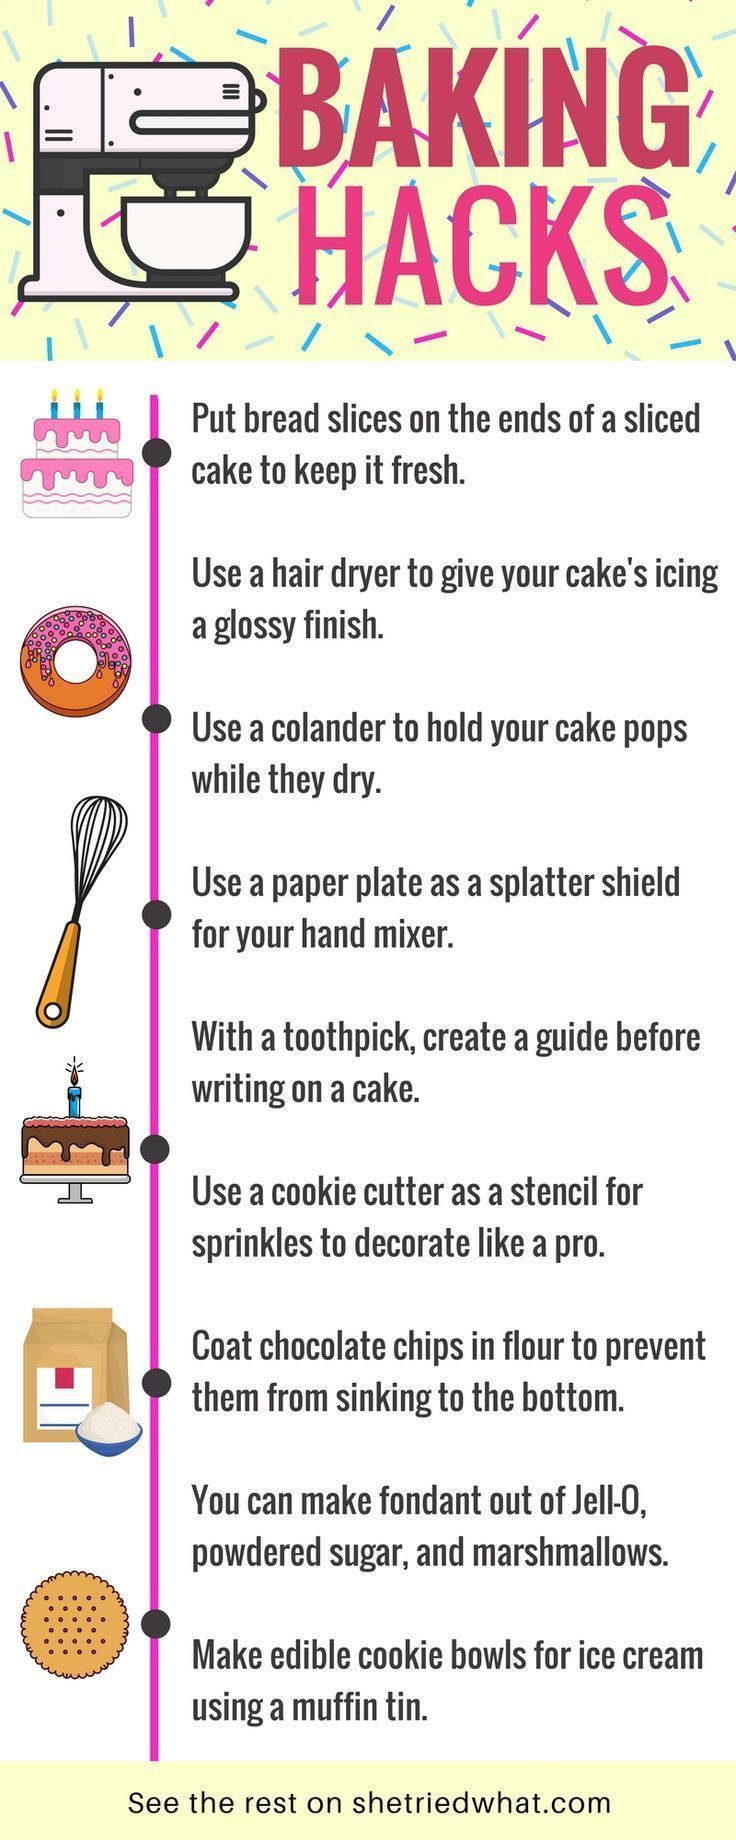 How'd I not know these baking tips & tricks? Amazing baking hacks that are so easy for cake decorating, baking cookies, and more. These are life hacks every girl should know! #baking #lifehacks #CookingIdeas